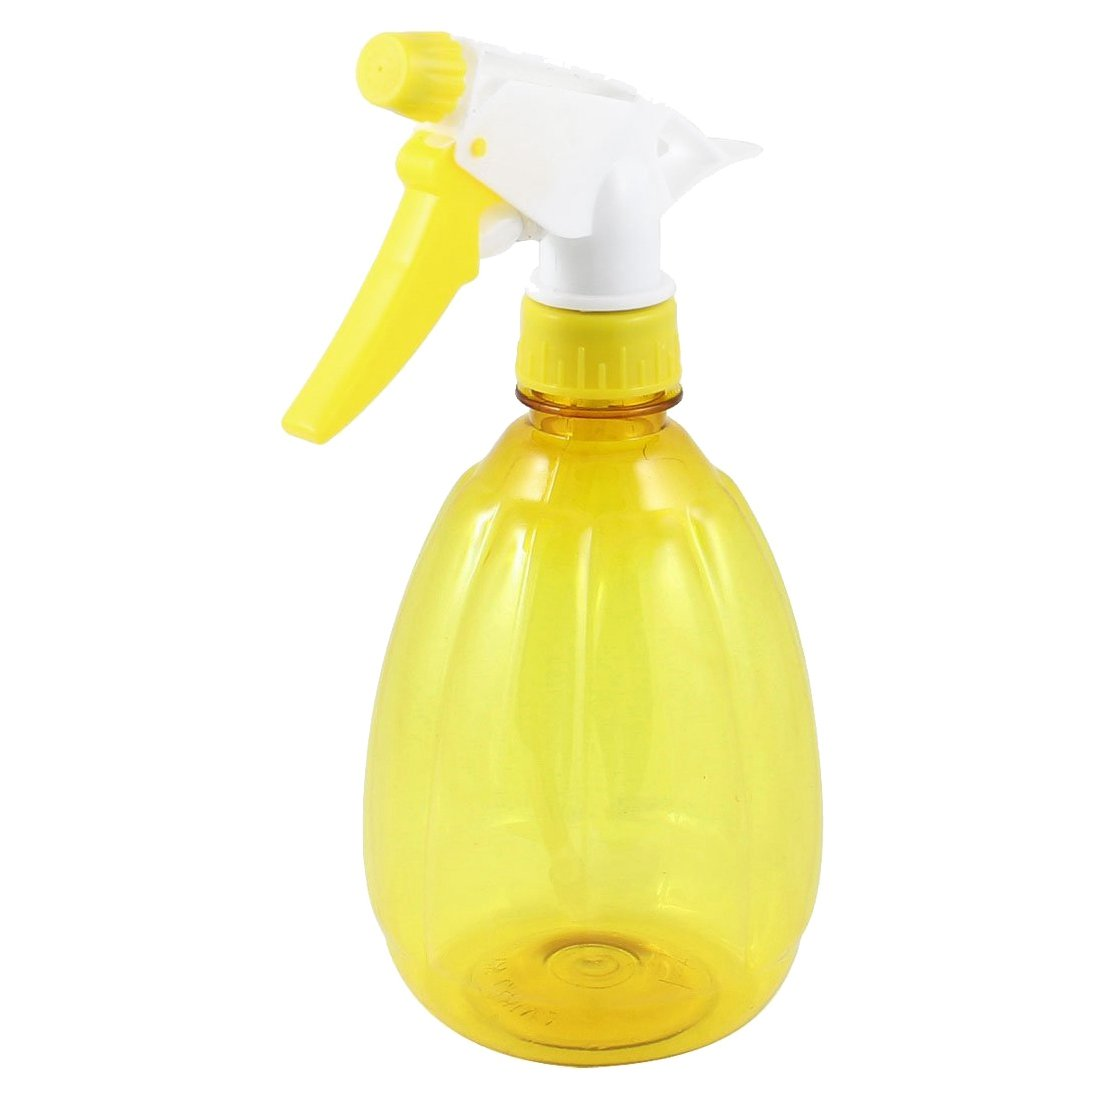 SODIAL 500 ml FLOWER handle press plastic single lever sink mixer tap spray bottle bicolor yellow